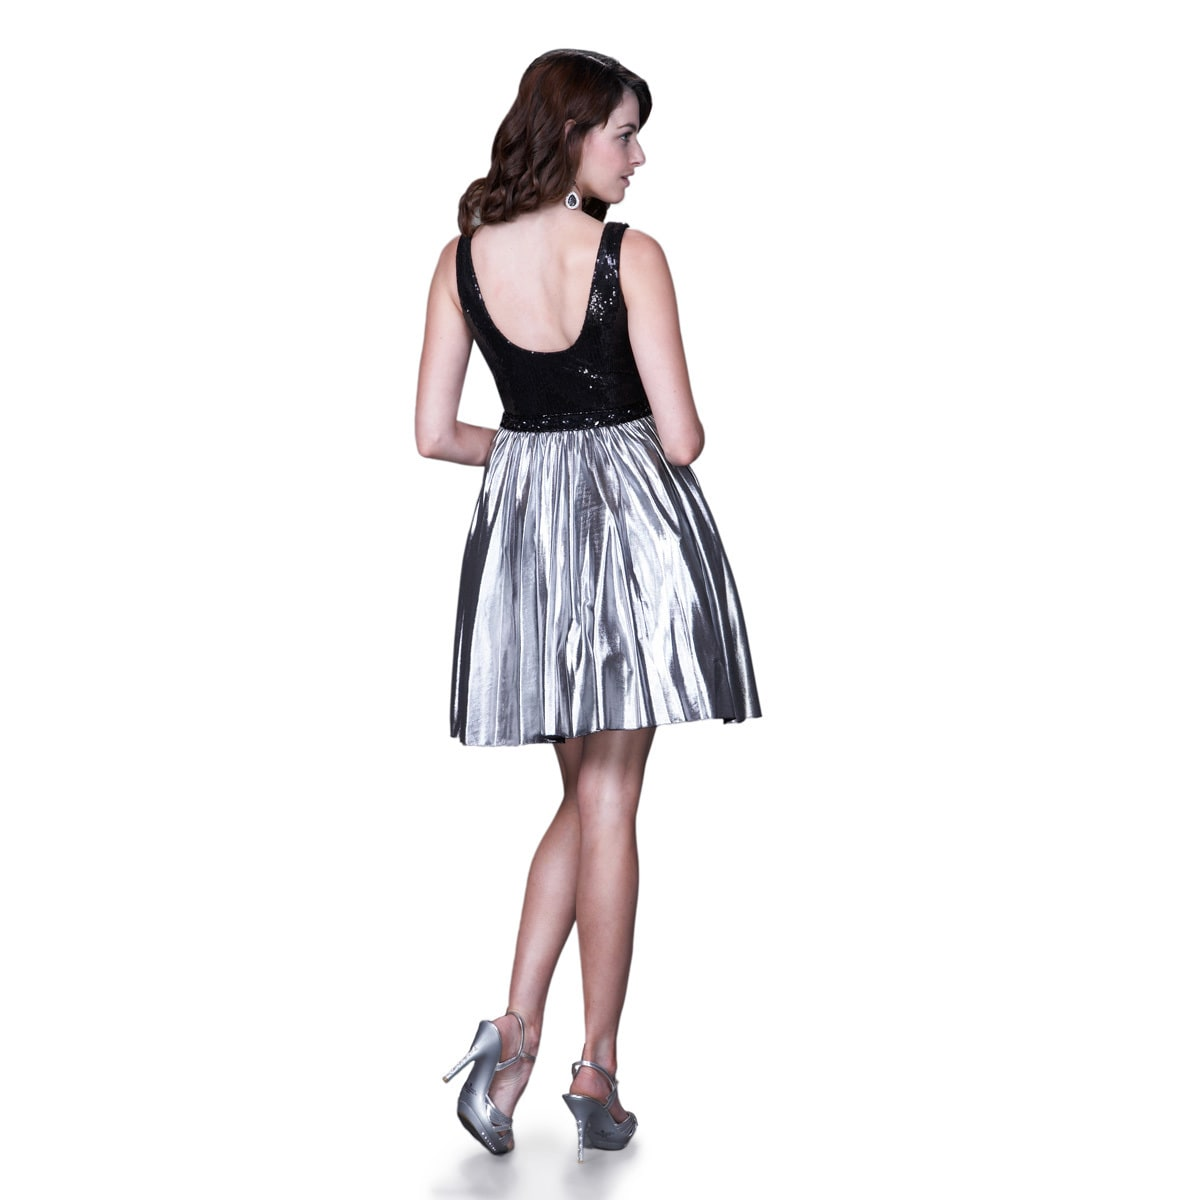 0beaadee57 Black And Silver Metallic Cocktail Dress - Gomes Weine AG